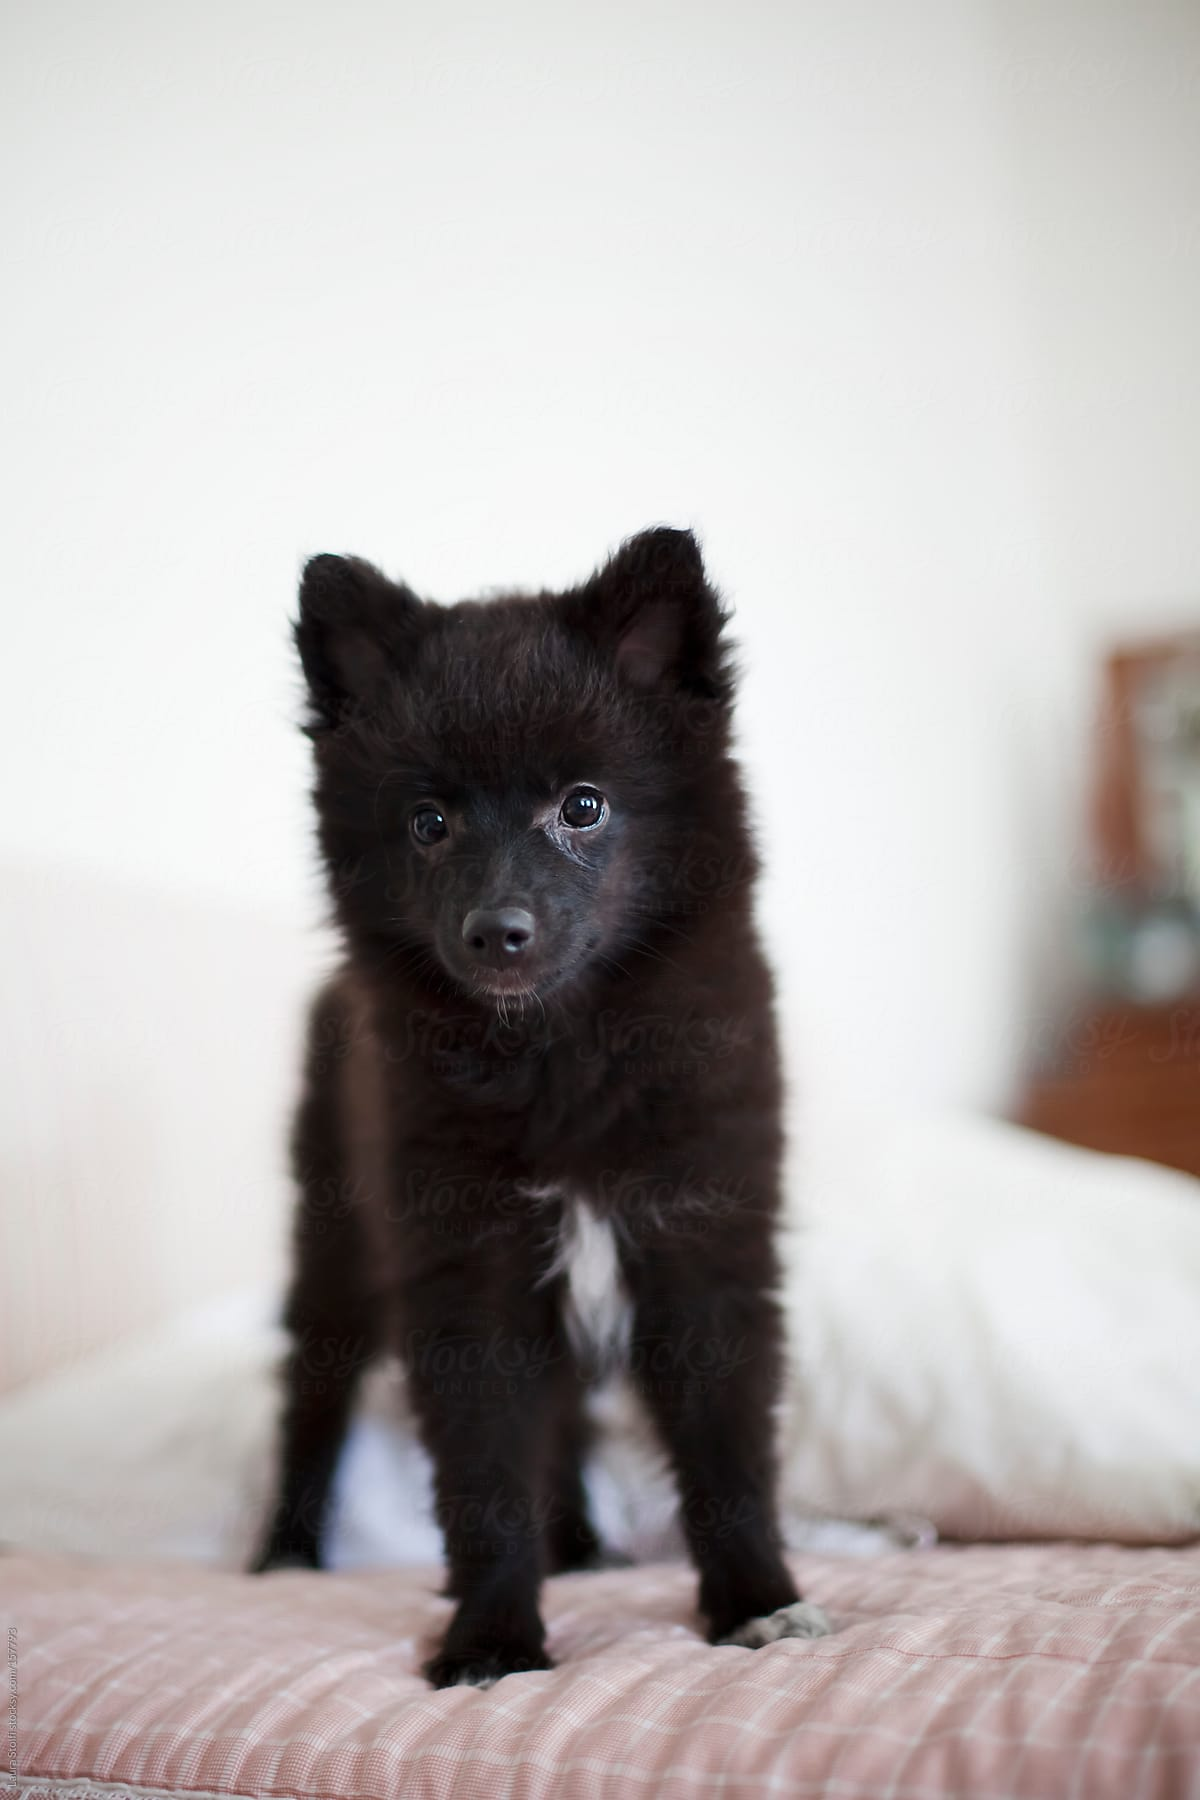 Black Pomeranian Puppy Stands On Bed And Looks At The Camera By Laura Stolfi Stocksy United